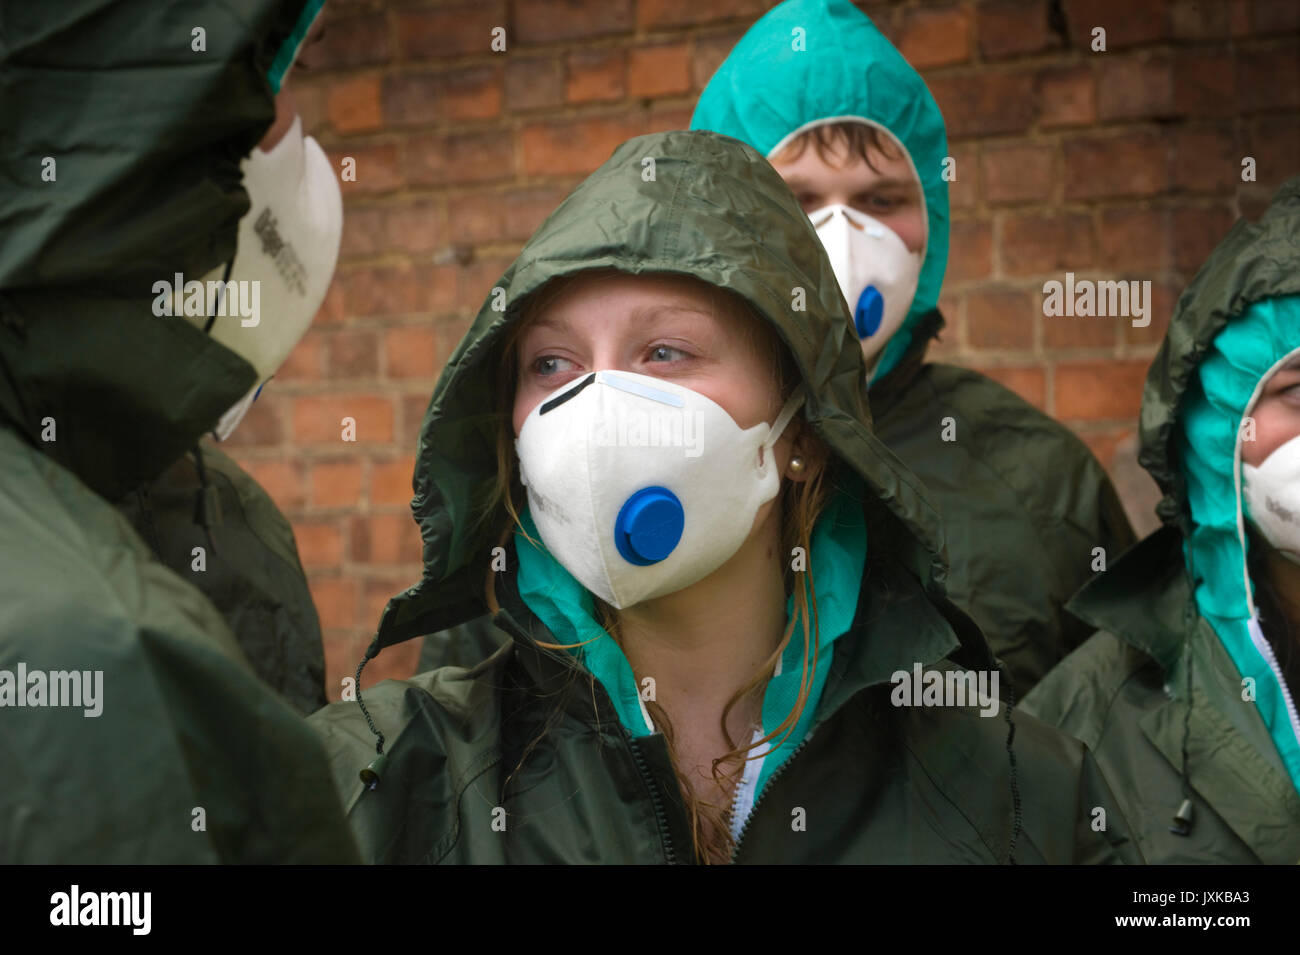 Decontaminated subjects in simulated chemical contamination incident wearing hood & face-mask. - Stock Image